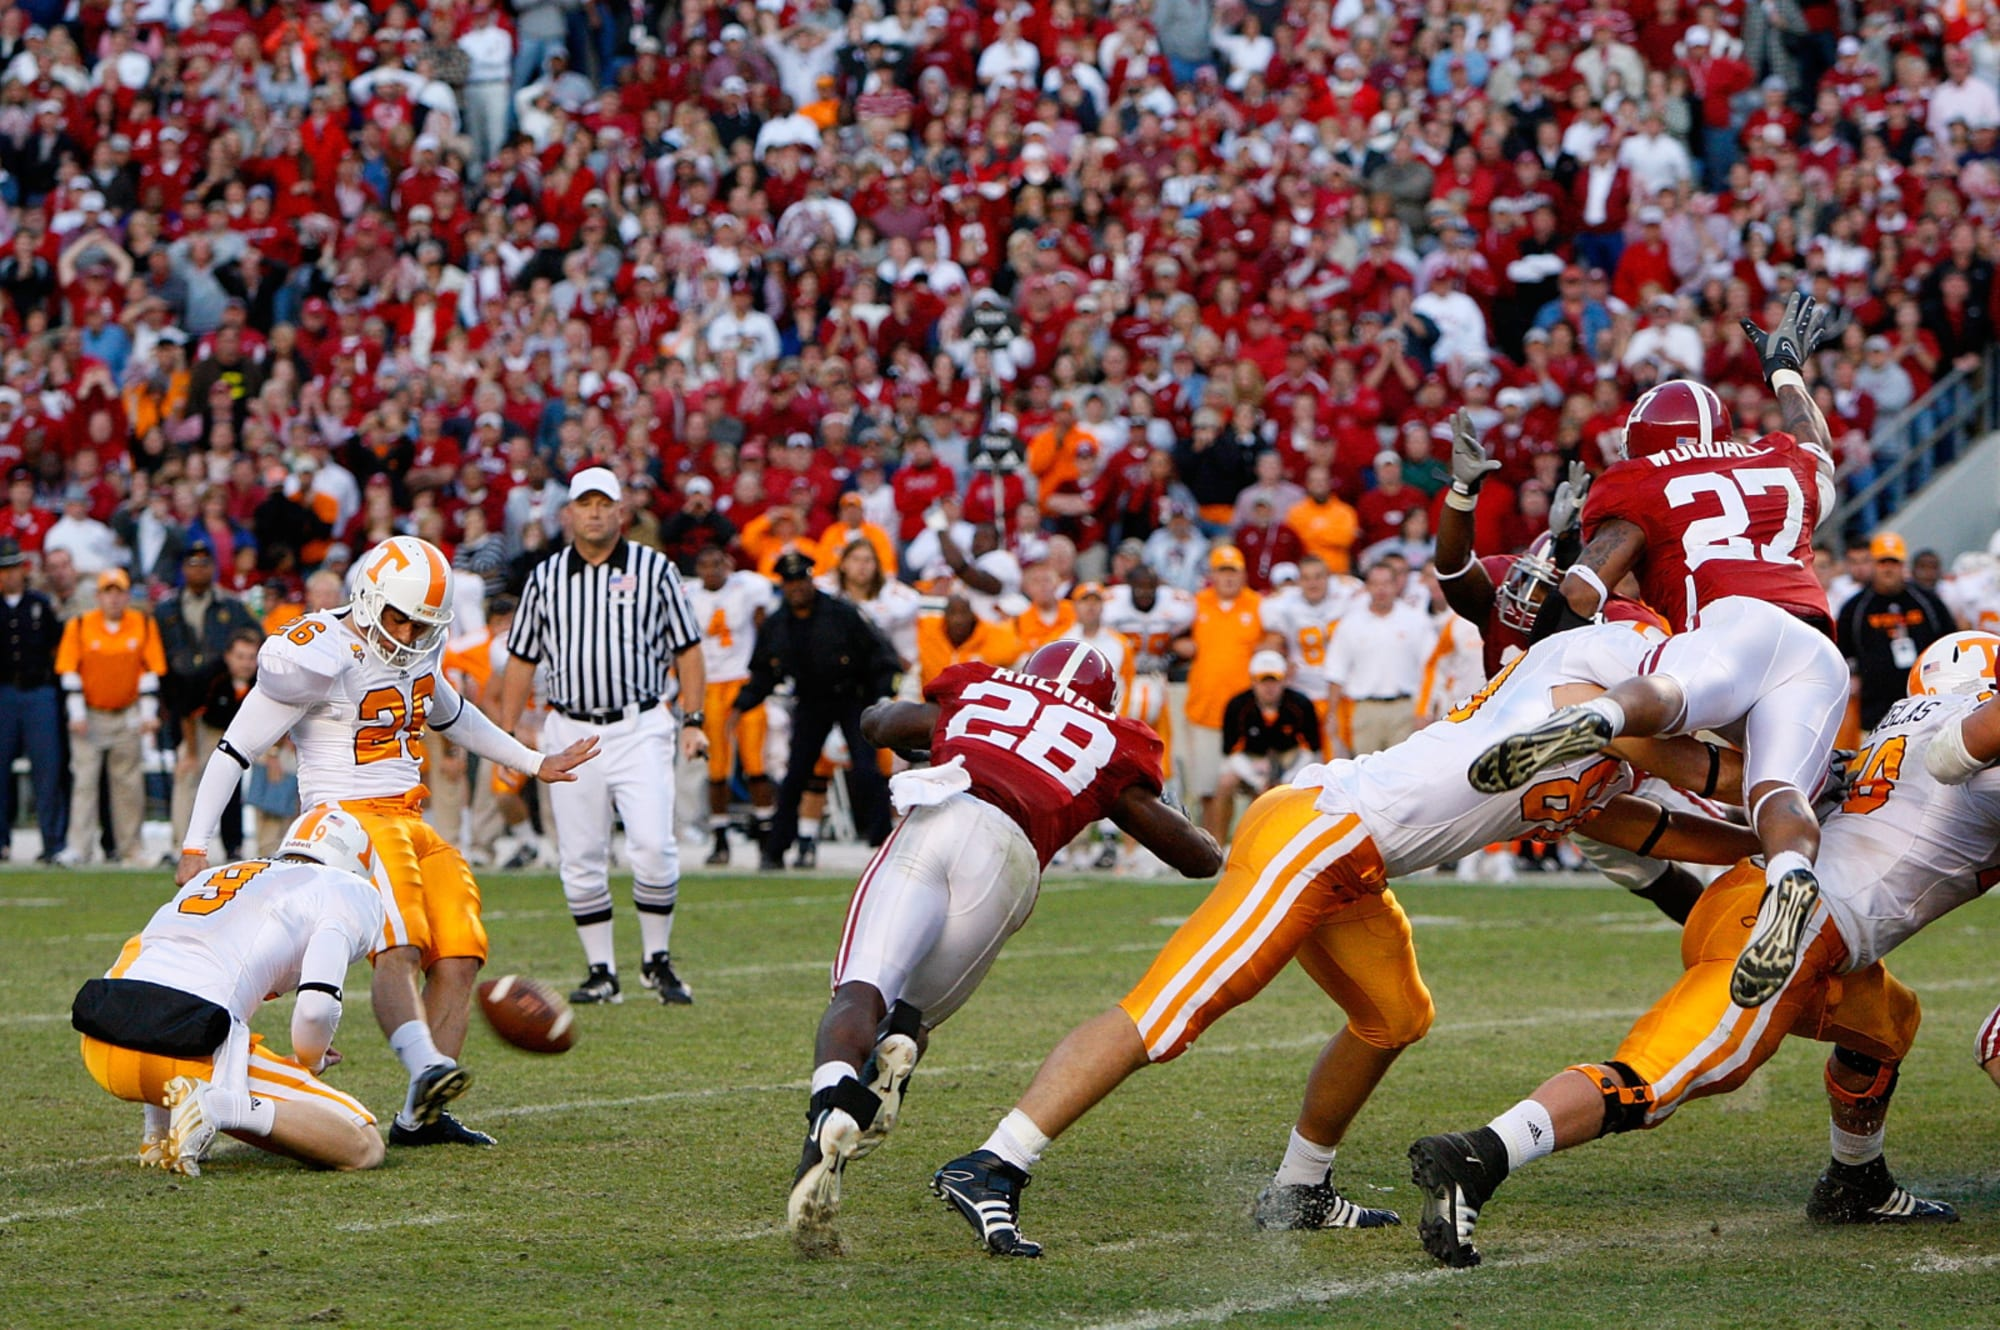 Alabama Football: 20-plus seasons with special wins over Phillip Fulmer